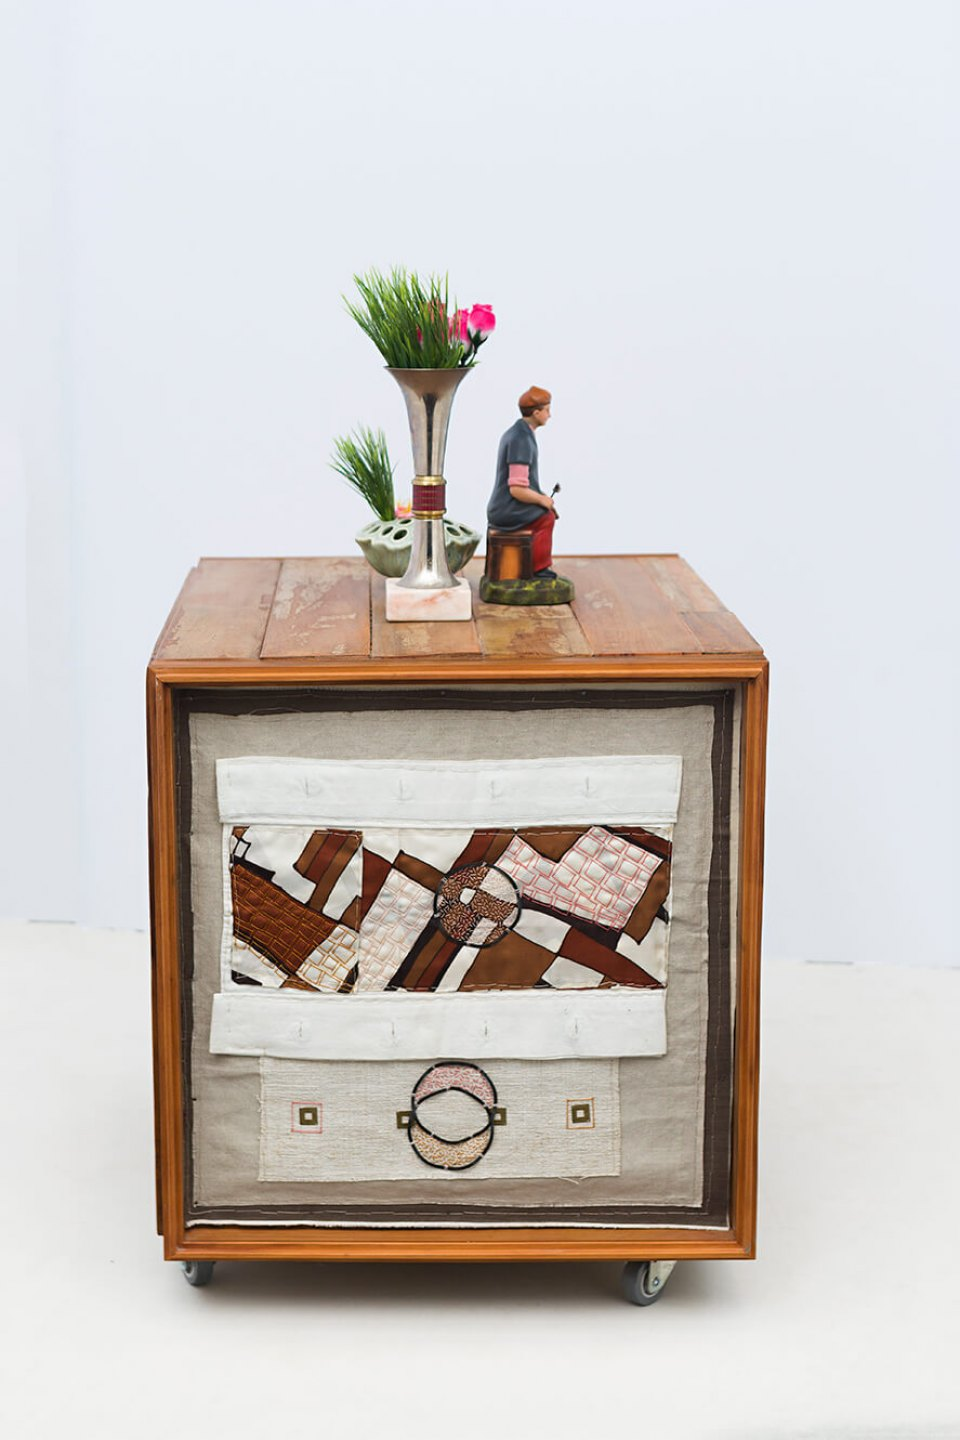 f.marquespenteado,&nbsp;<em>Cubo modular, from Sentido Figurado series</em>, 2014, recycled wood, hand and machine&nbsp;embroidery on industrial felt, various objects, 97 × 64 × 55 cm - Mendes Wood DM